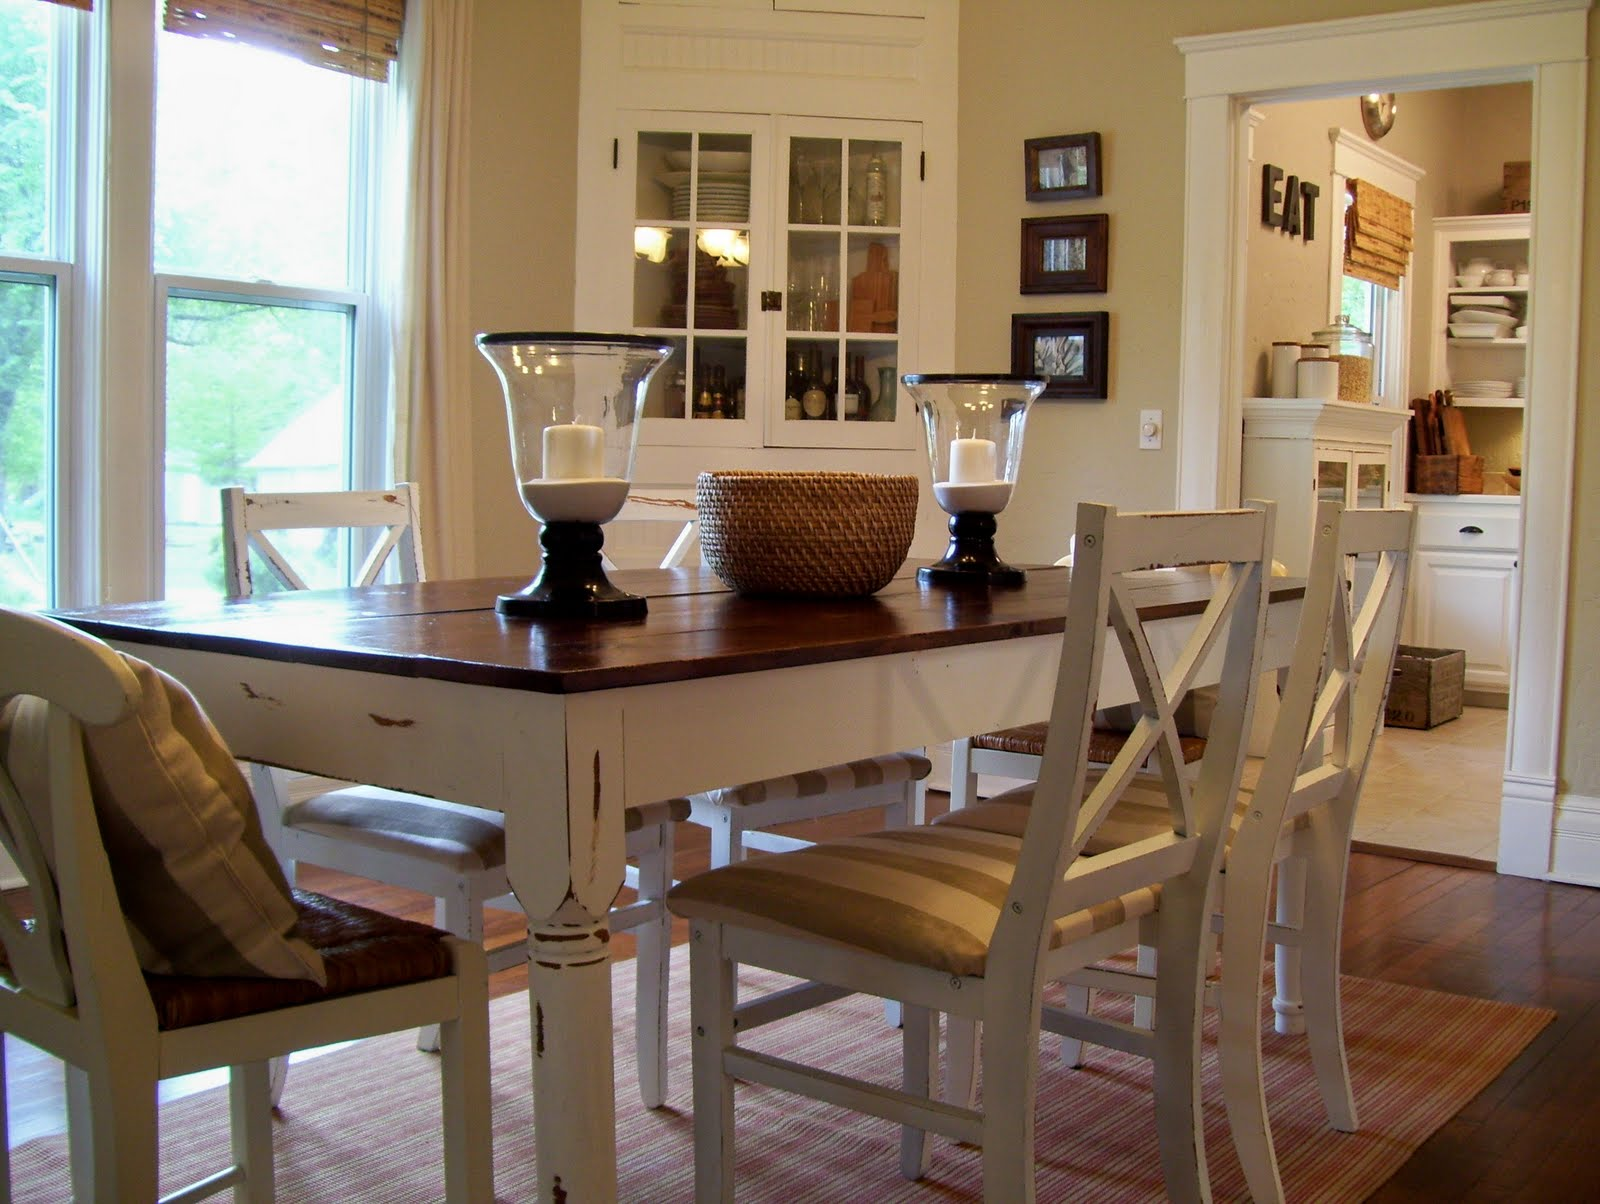 Retro Dining Room Table And Chairs Ak Gaming Chair Vintage Home Love A Redo With Special Meaning